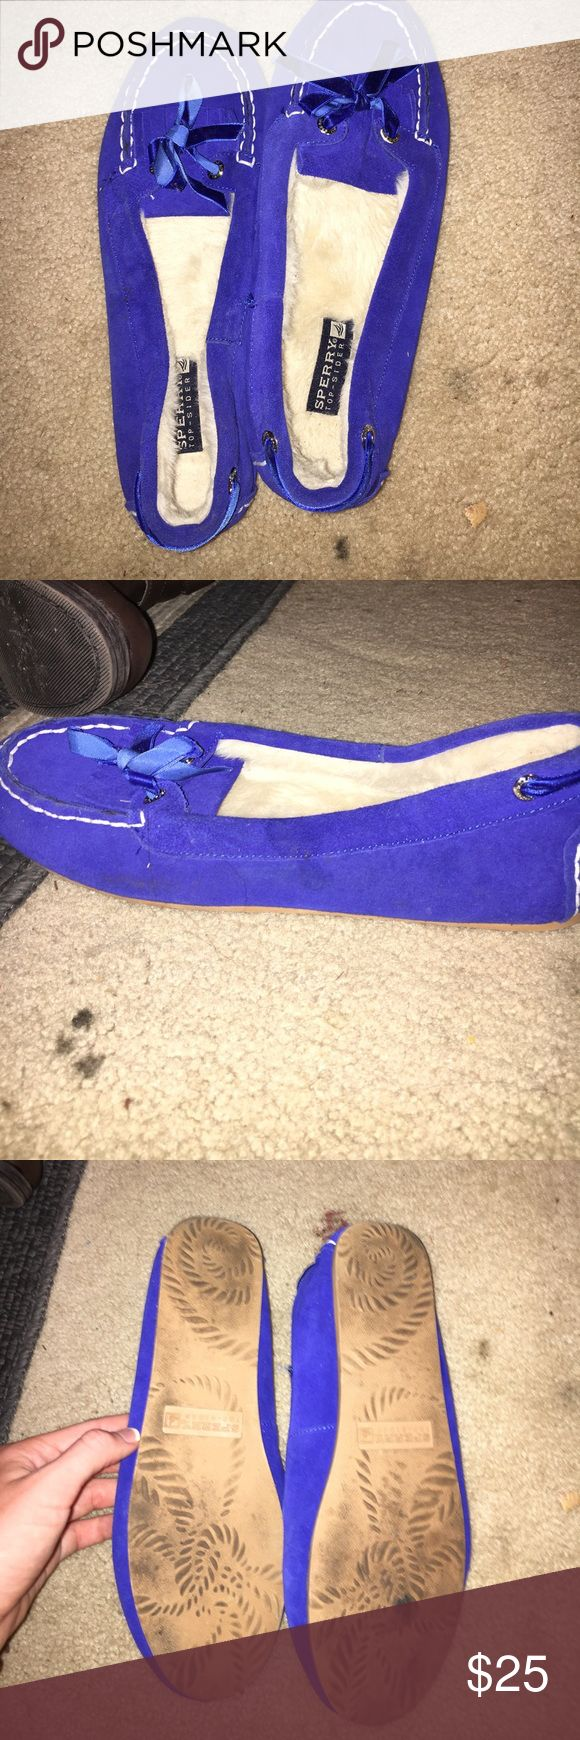 Sperry slippers! Only been worn around house! A little dirty on bottom but not really! Top and inside of shoe look new! Only actually worn a few times! Great condition! Sperry Top-Sider Shoes Moccasins